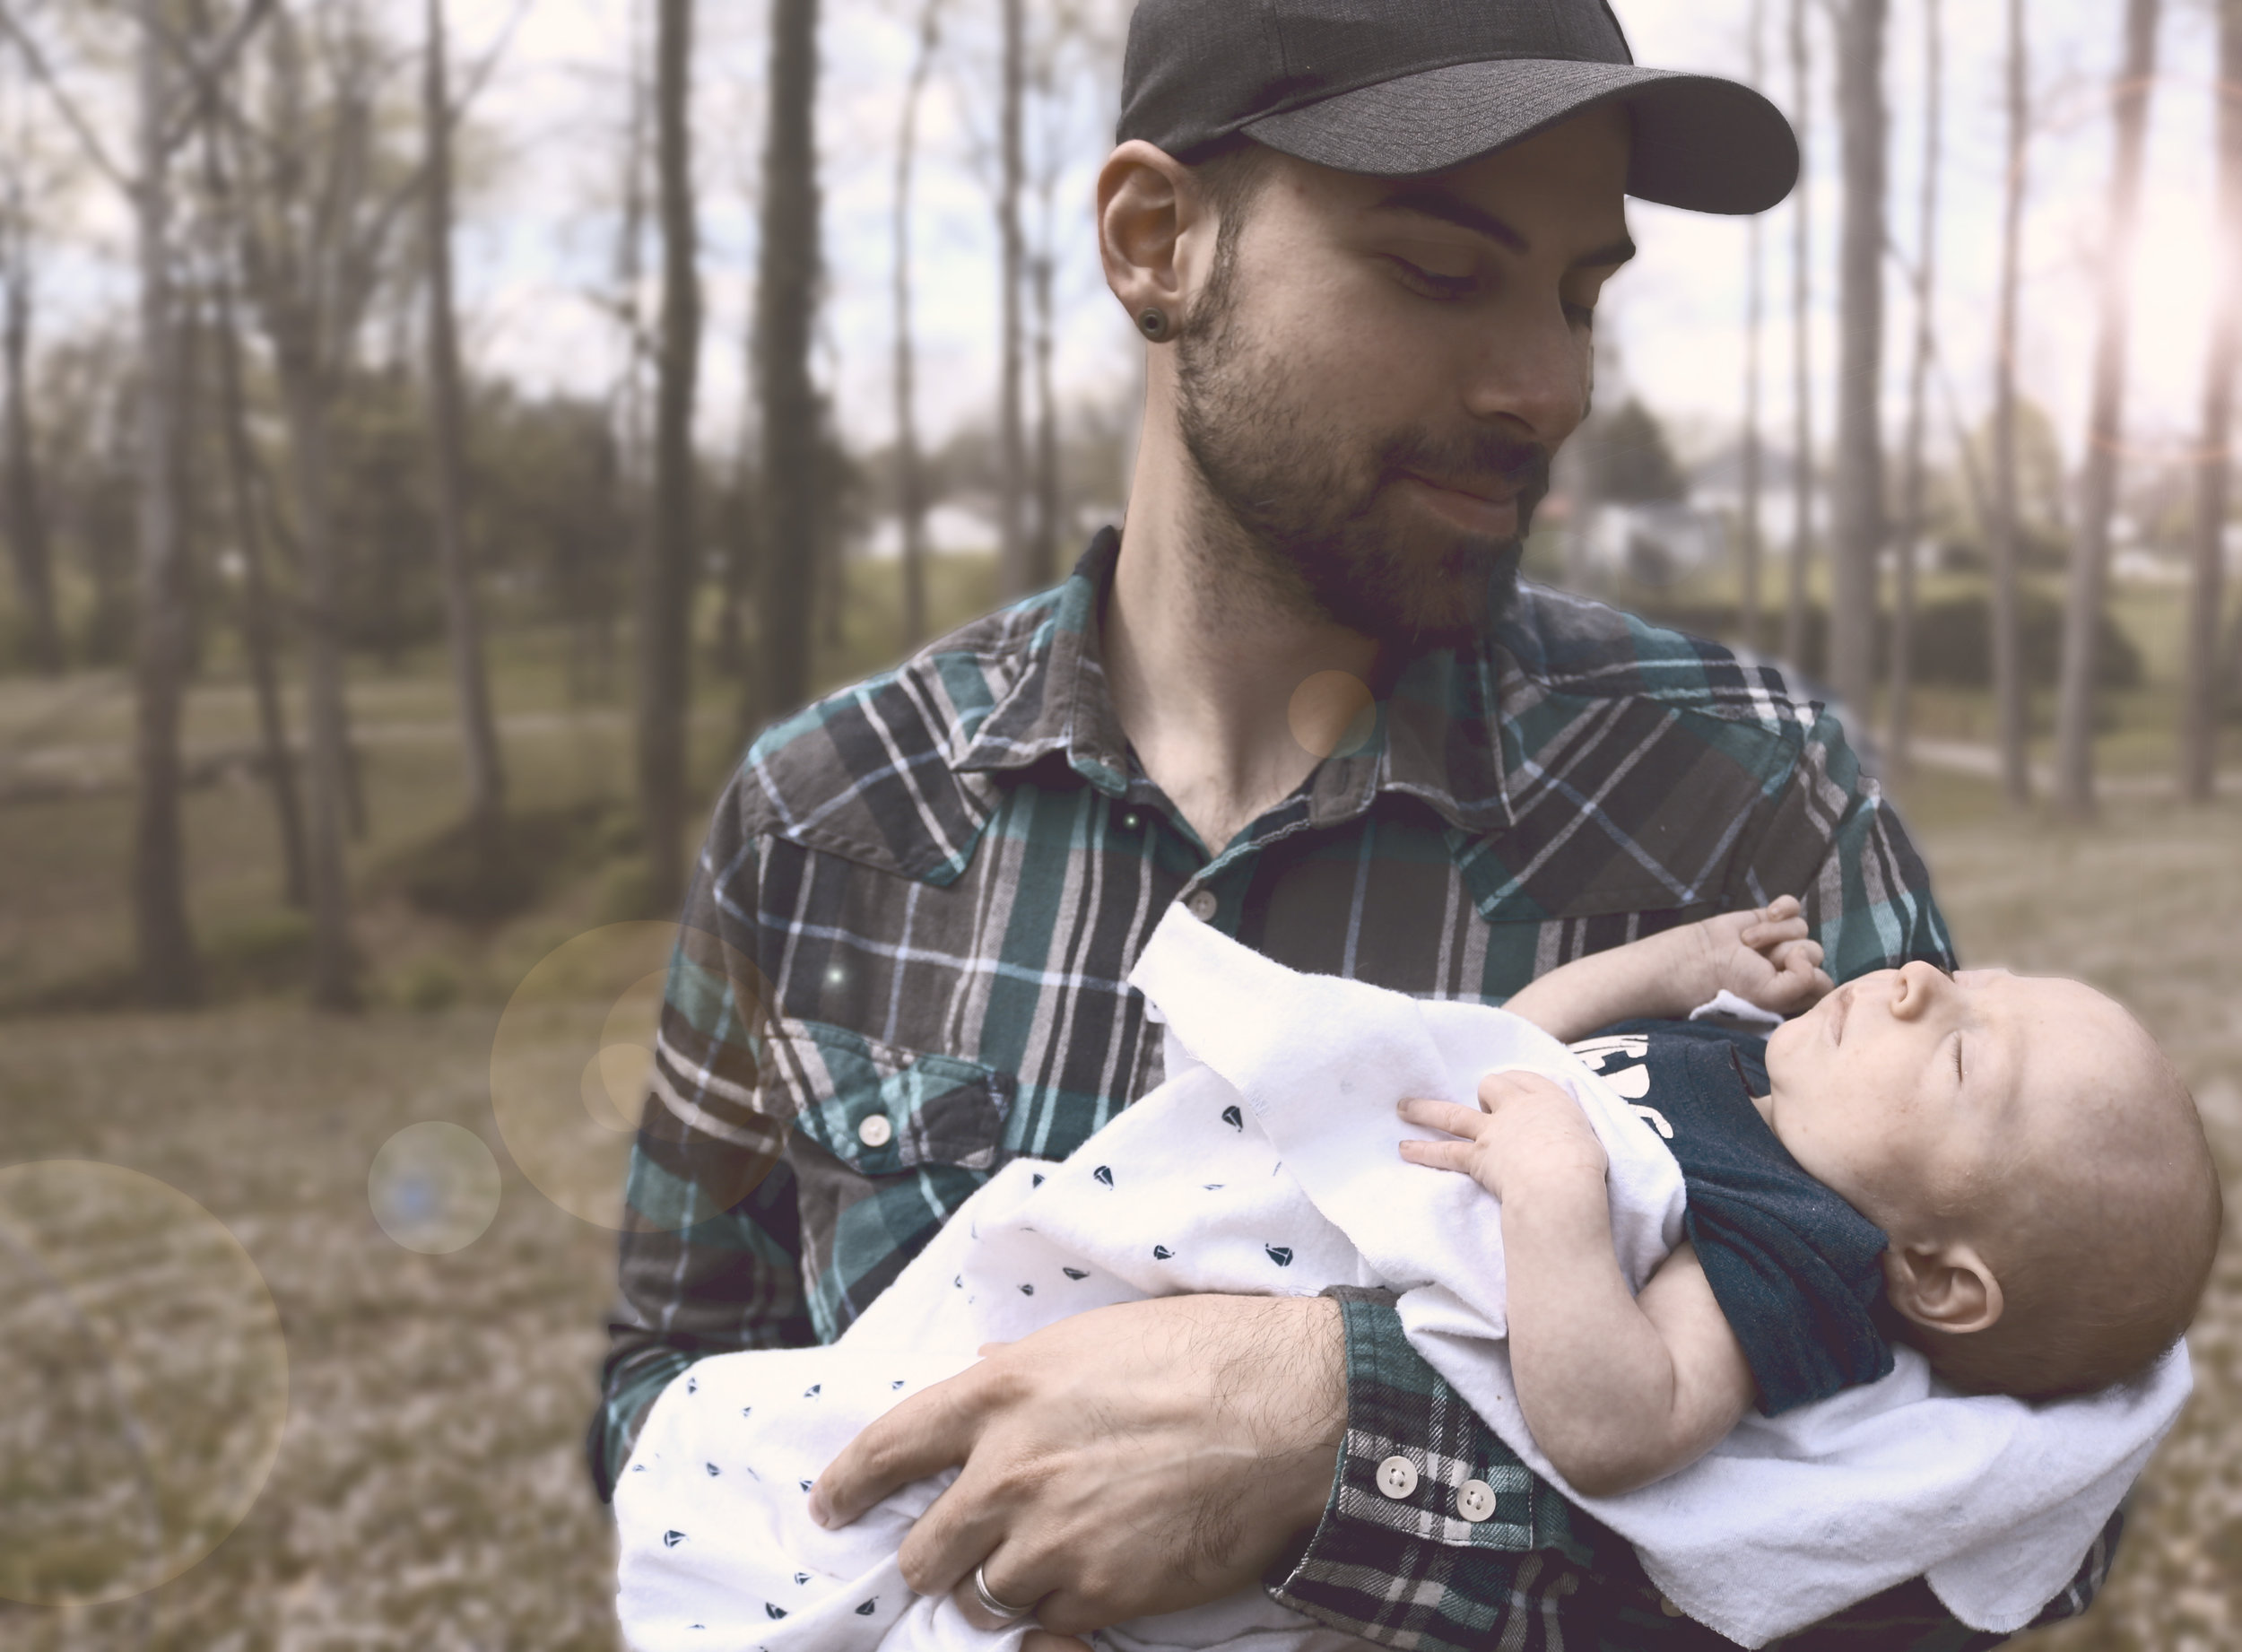 Canva - Man Holding Baby during Daytime.jpg